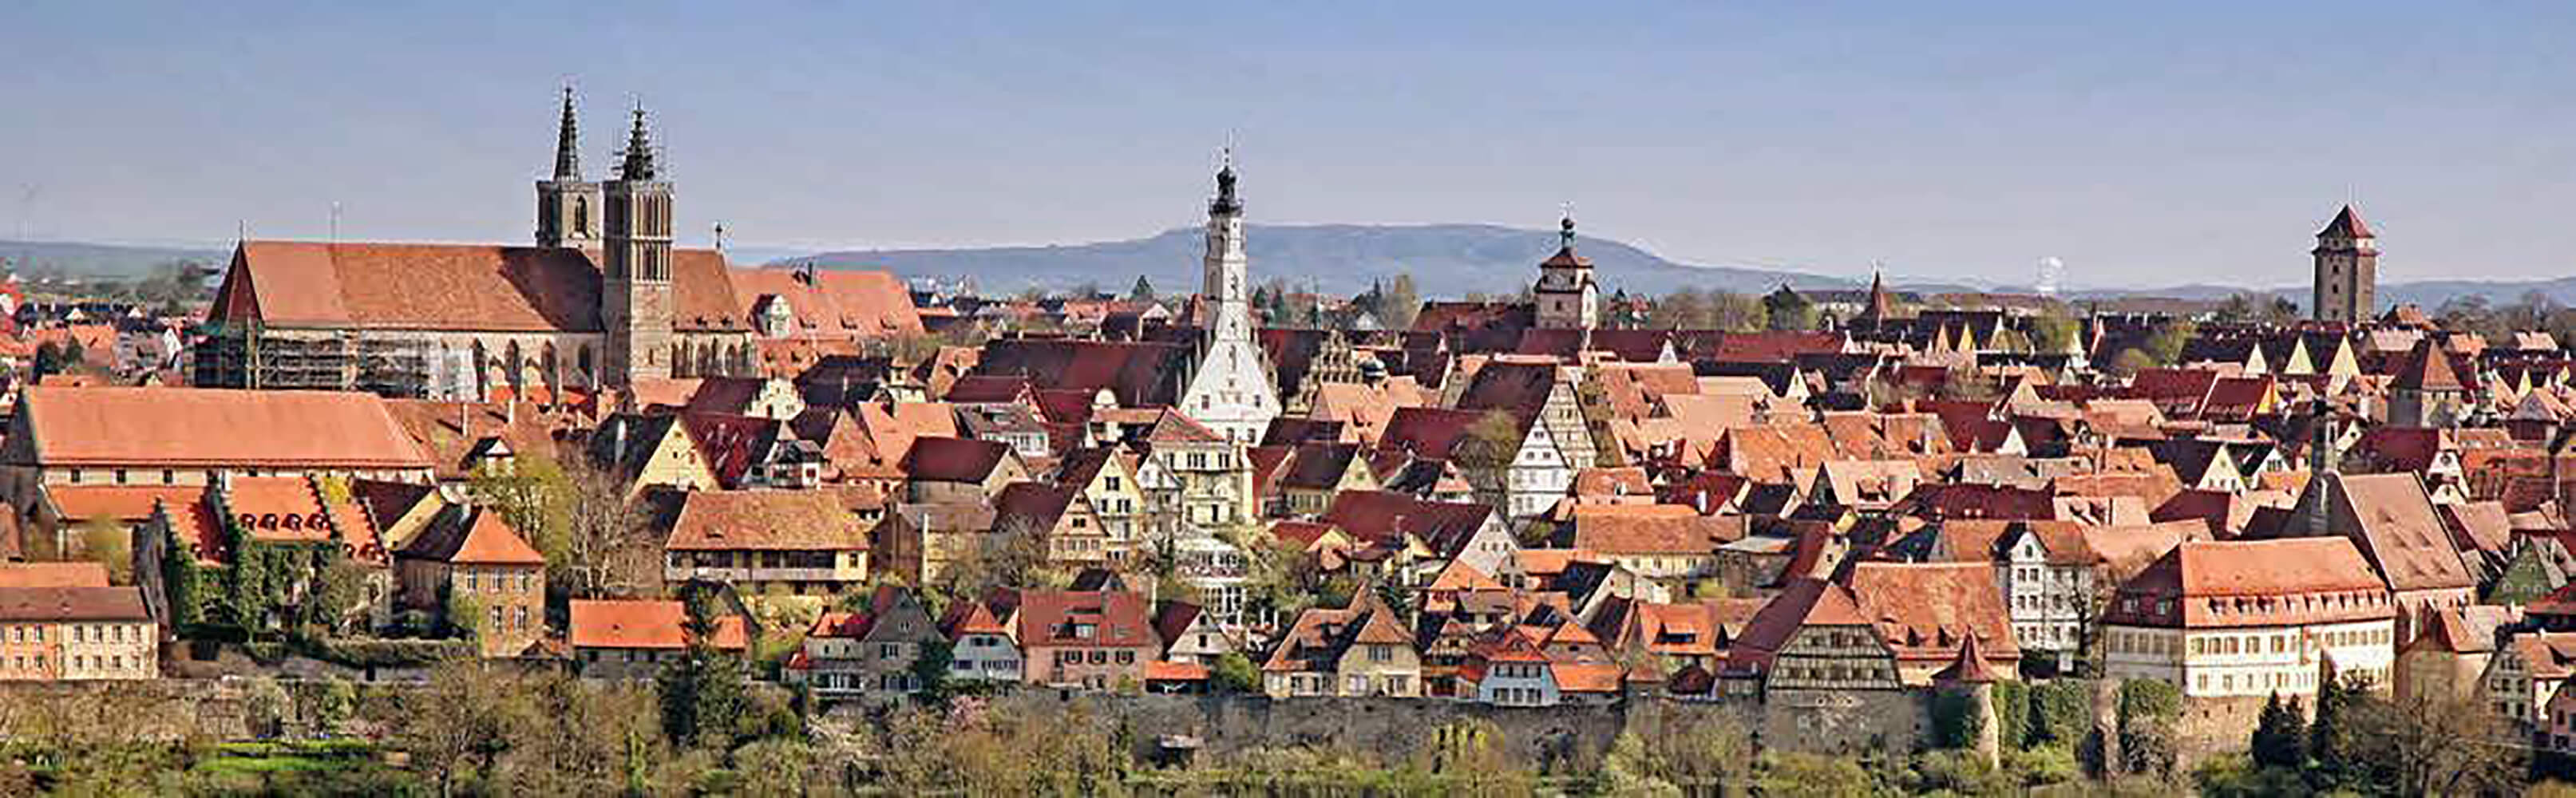 Rothenburg ob der Tauber in Mittelfranken 1